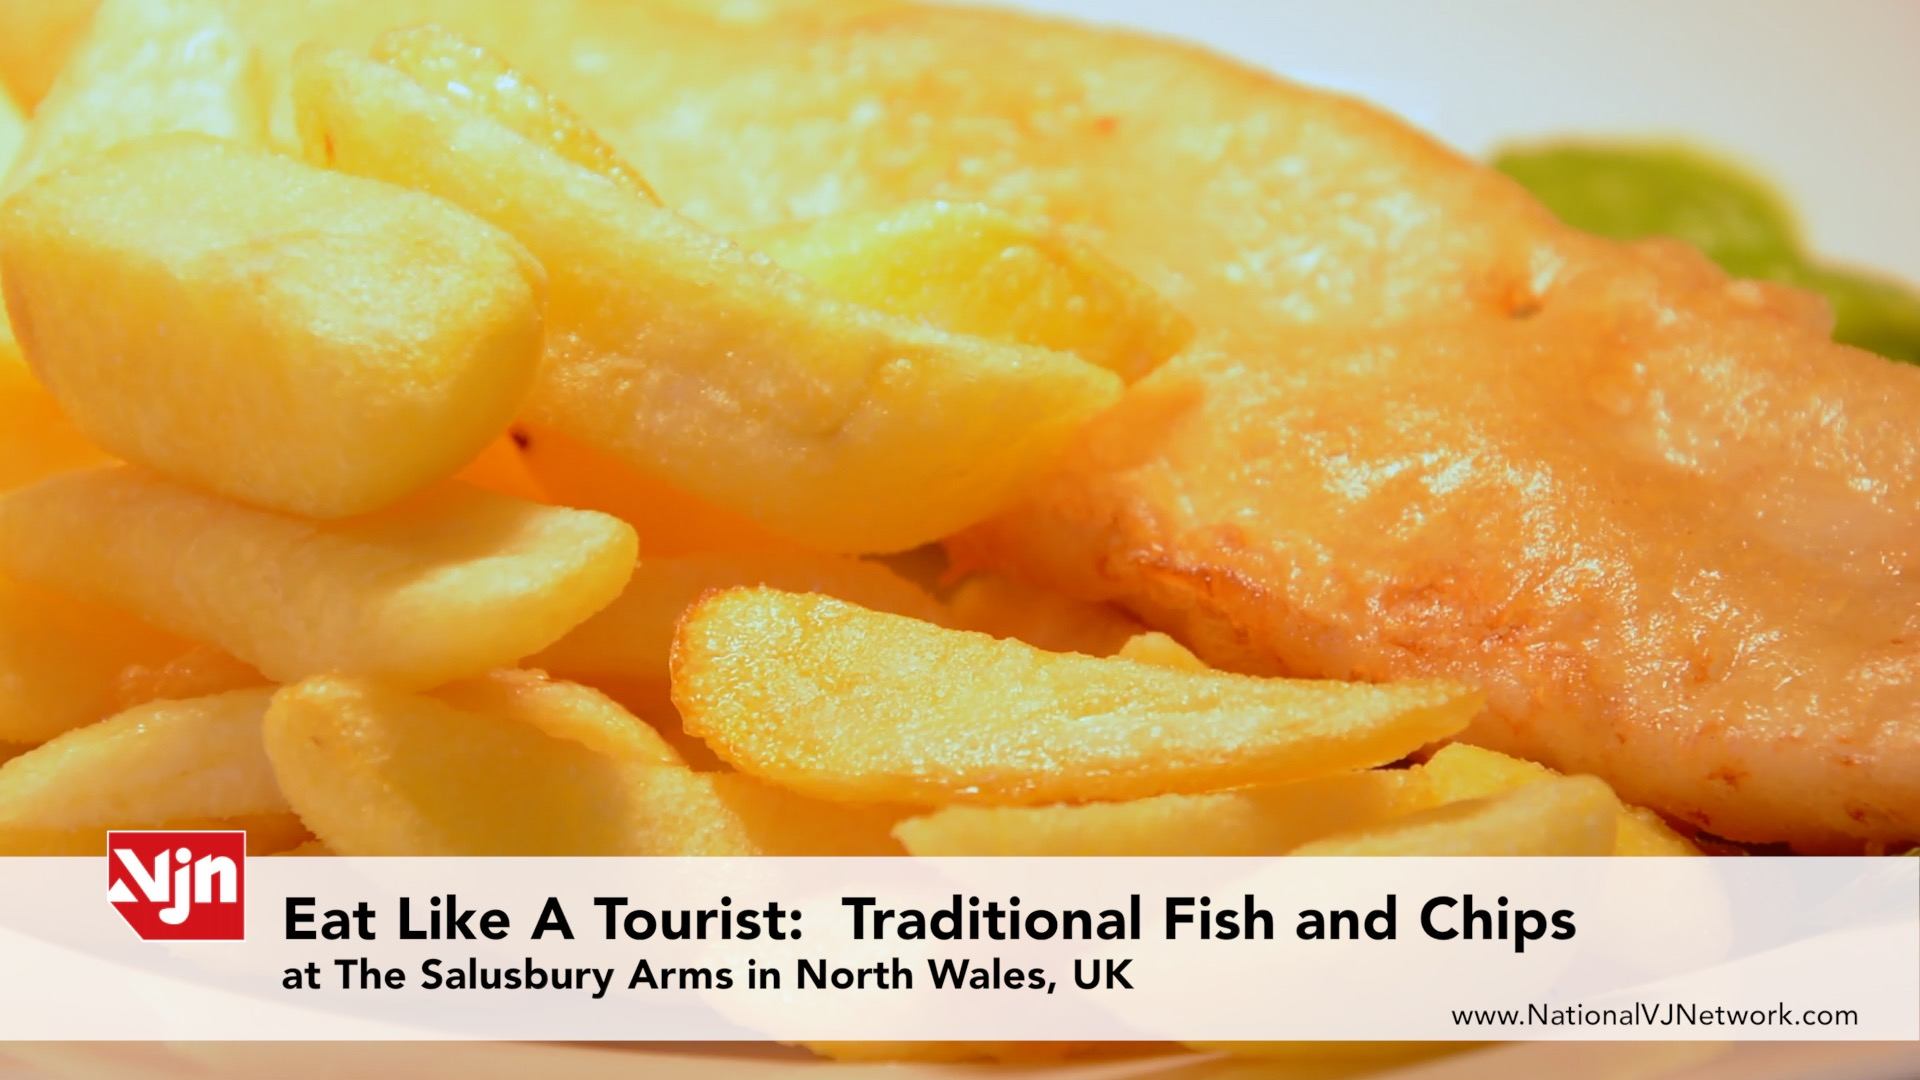 Eat Like A Tourist: How to Make Traditional Fish and Chips - North Wales, U.K.